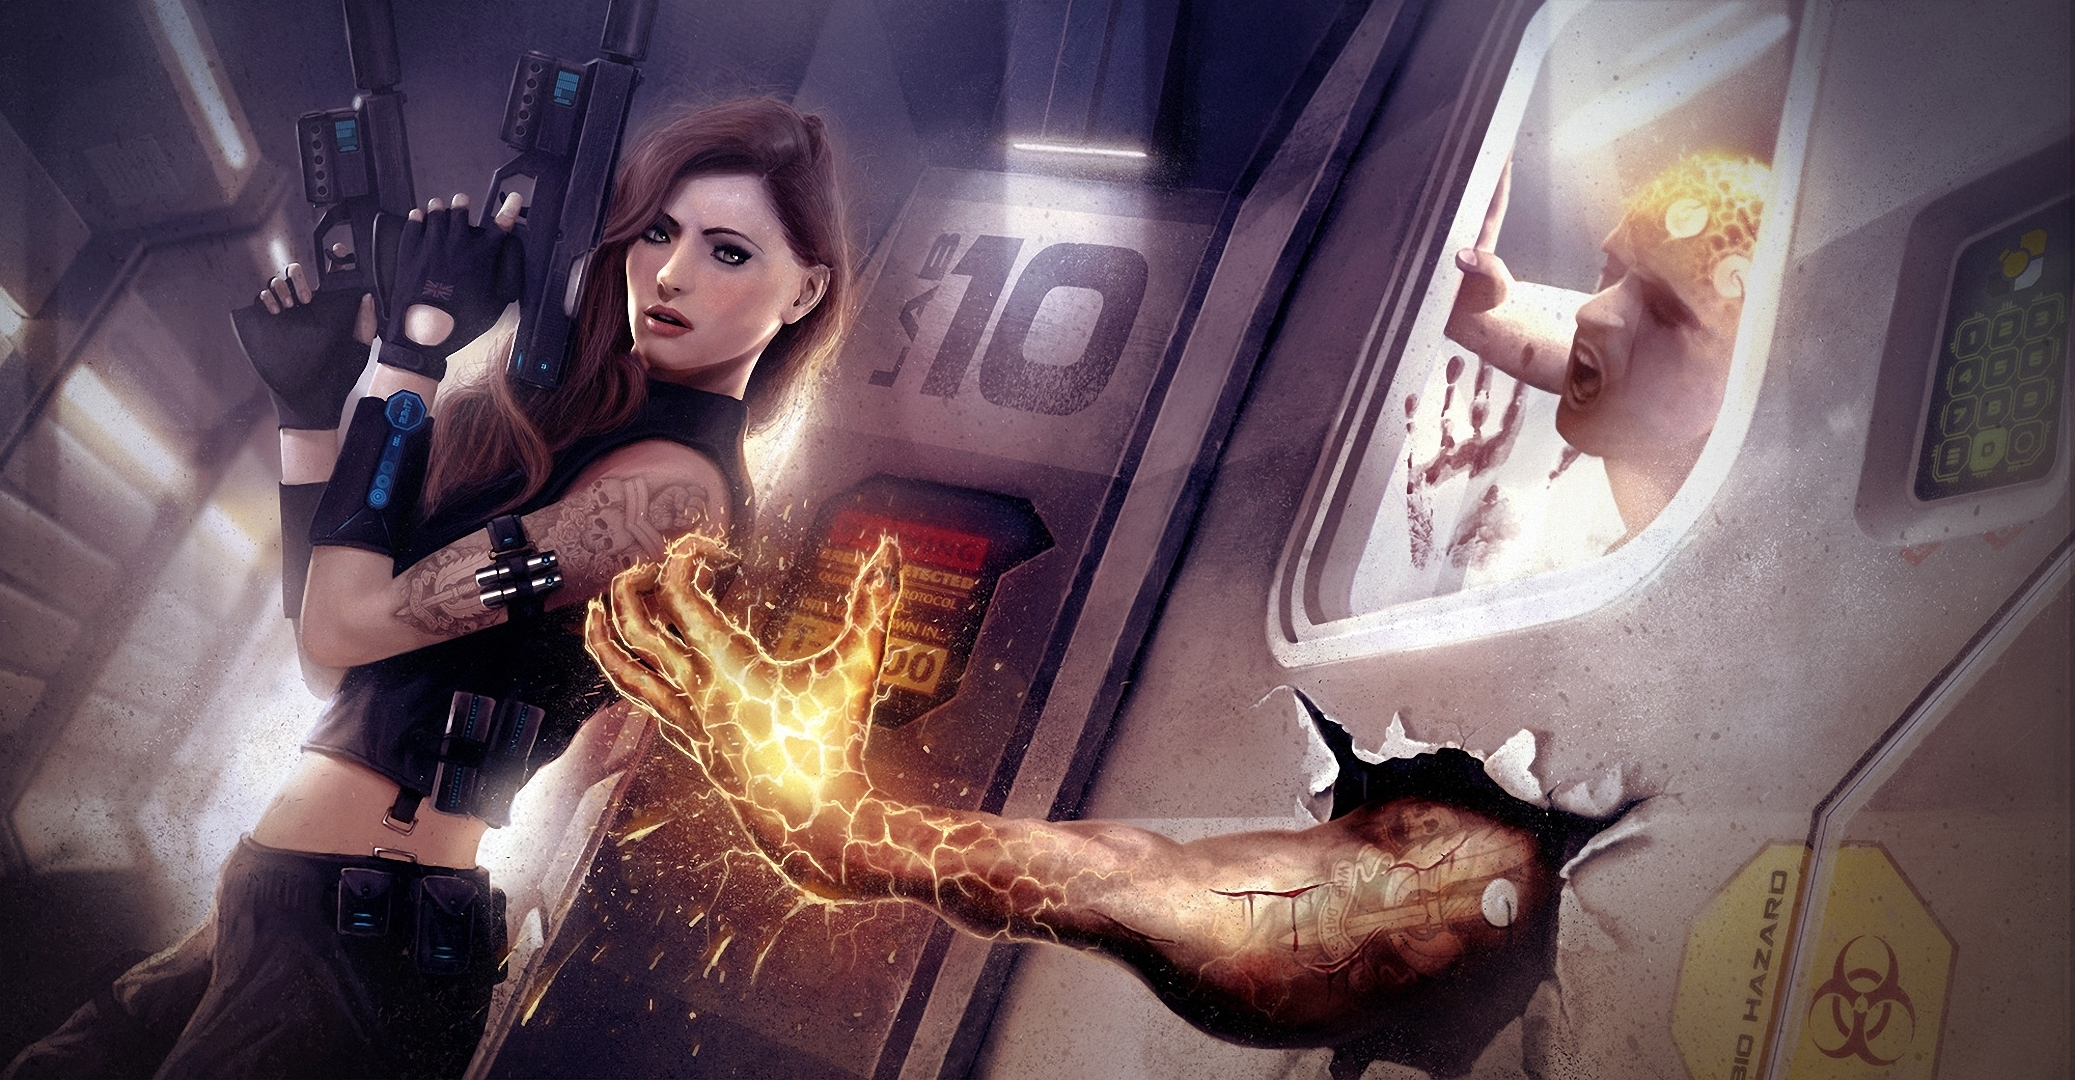 Sci fi resident evil porn adult streaming